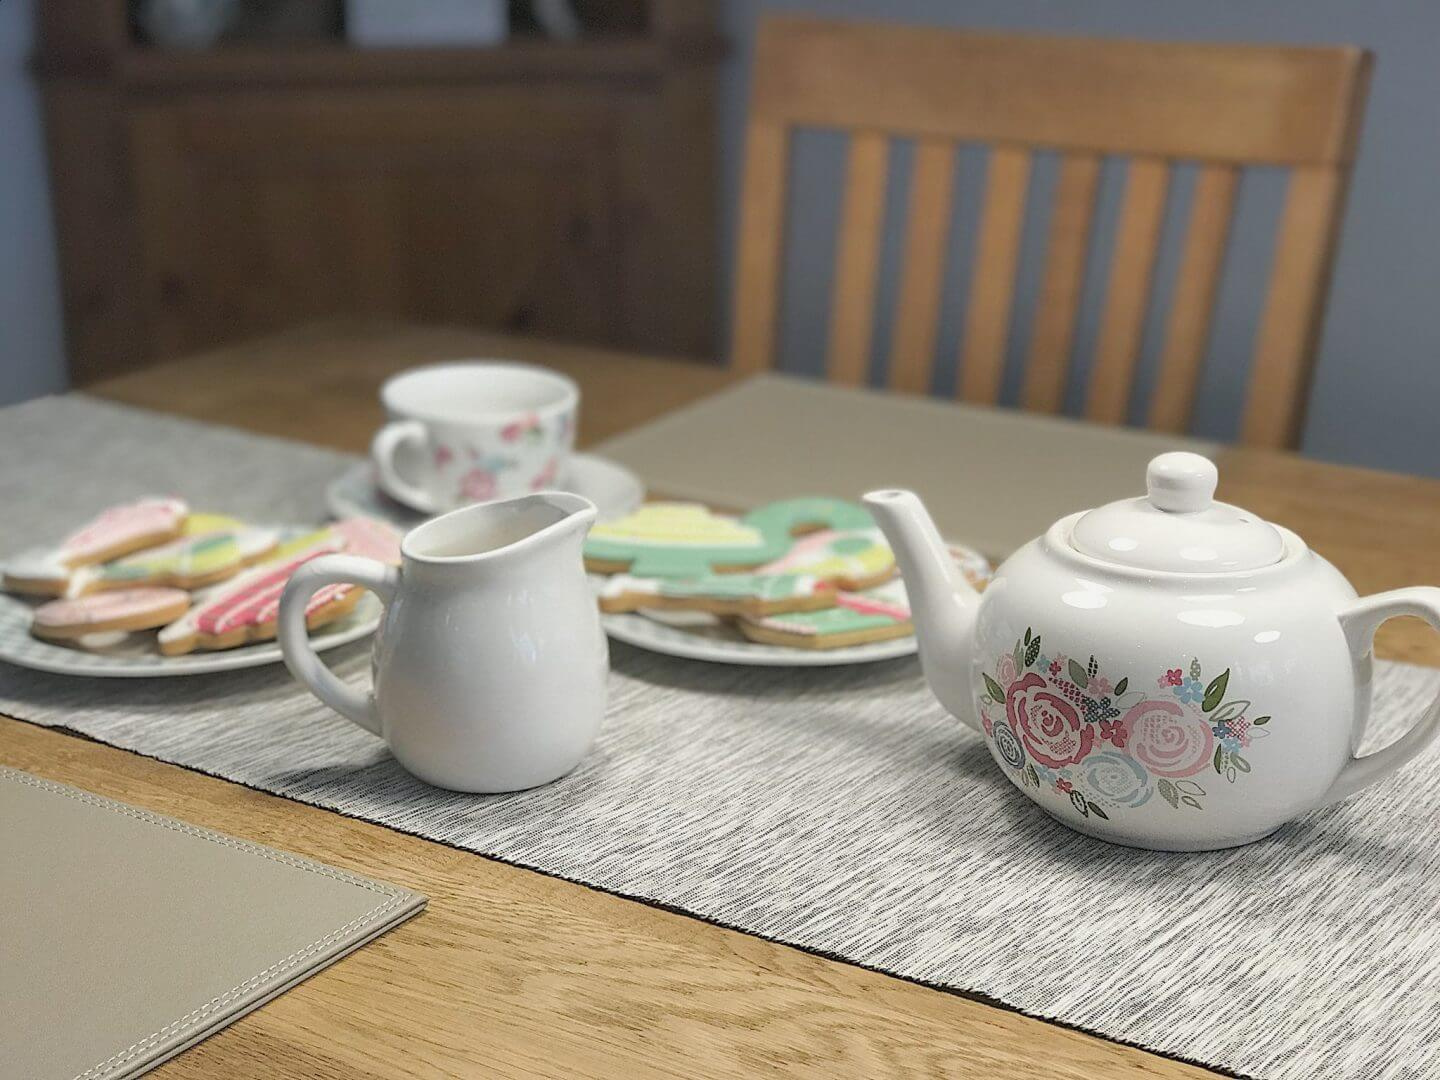 Tea set with yellow, pink and green iced biscuits on a plate